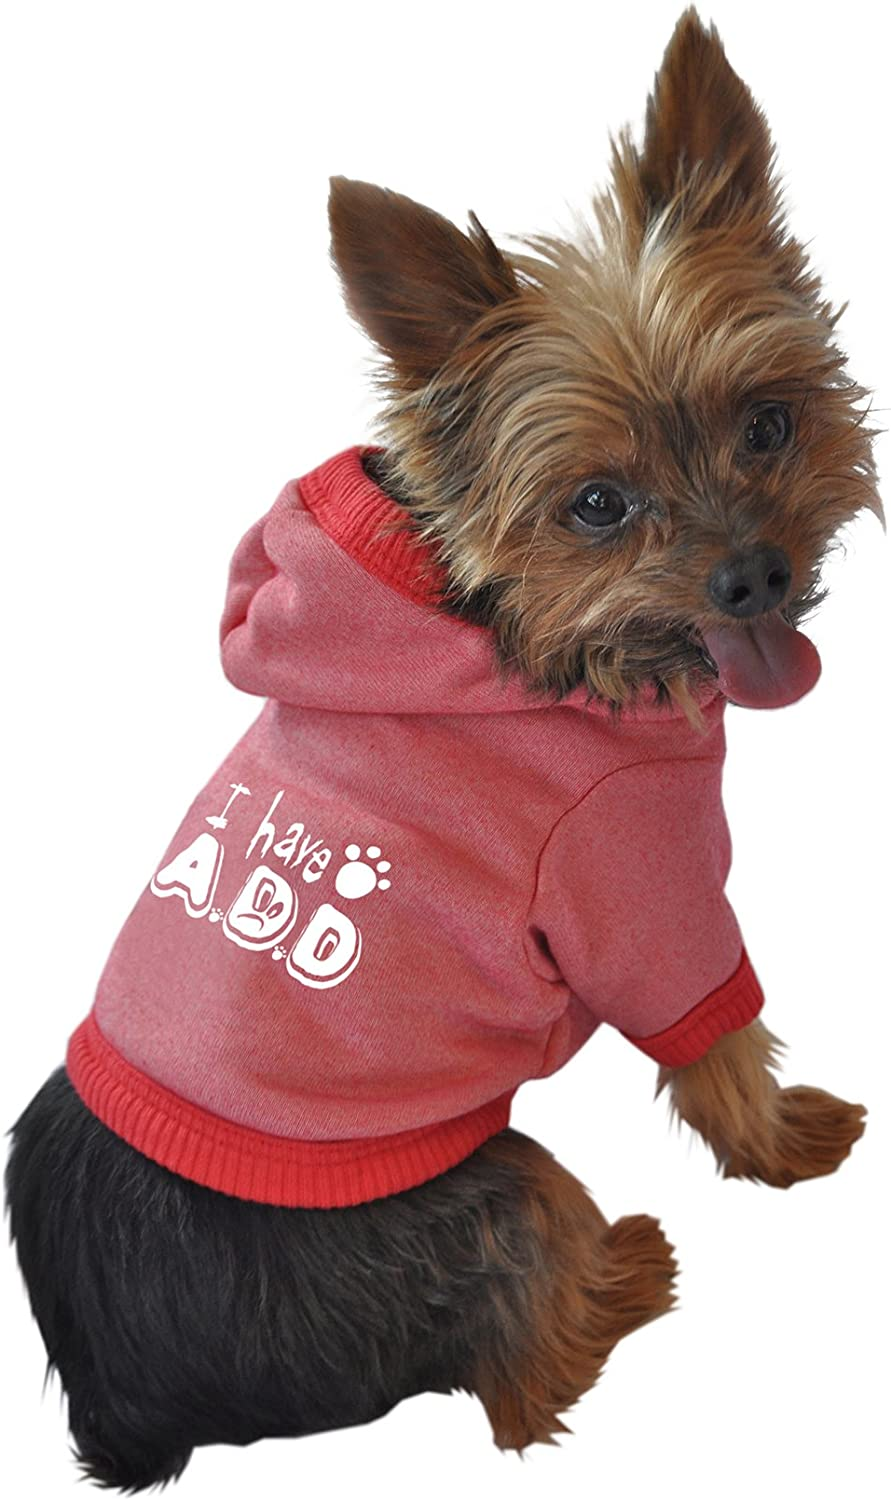 Ruff Ruff and Meow Medium Dog Hoodie, I Have A.D.D, Red